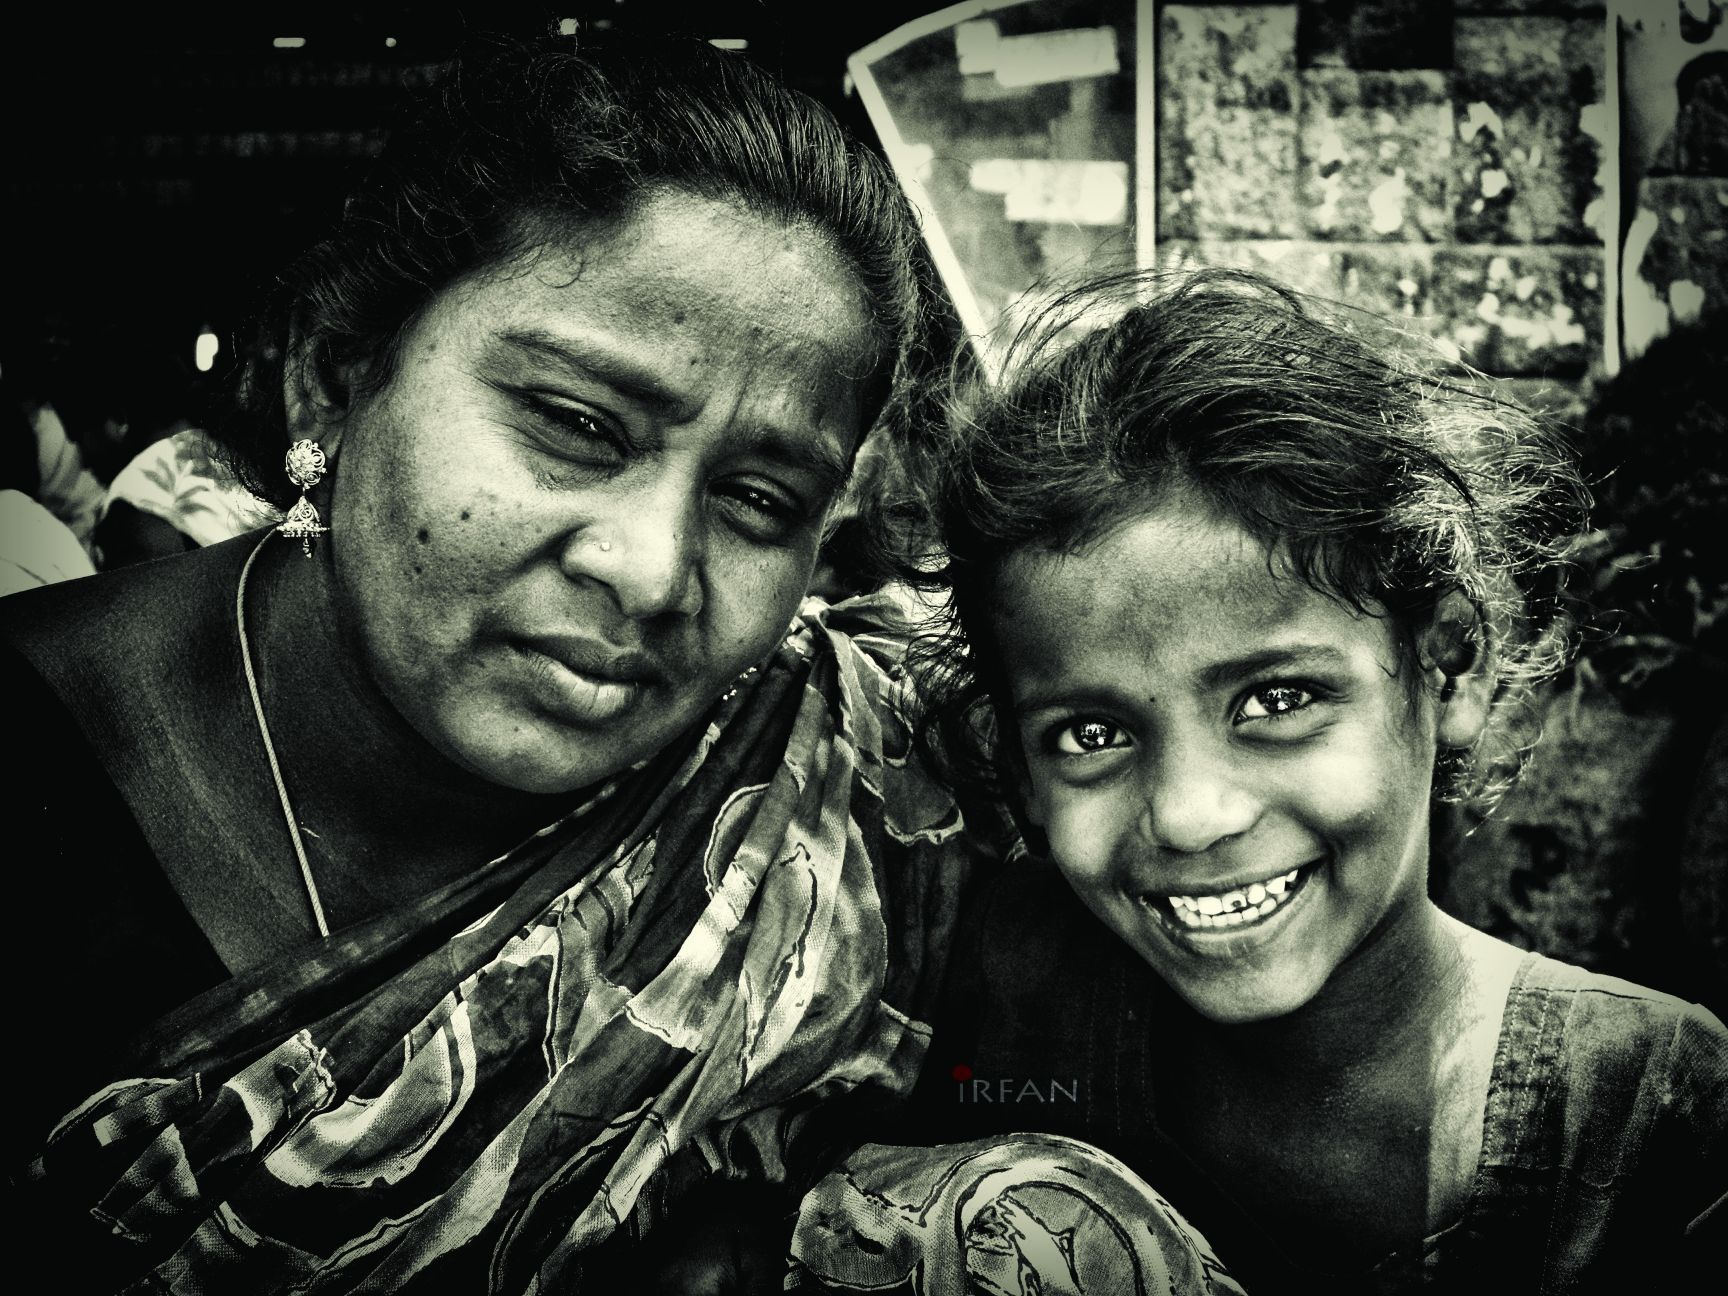 mother, daughter, street photography, black and white, portraits, irfan hussain, thereddotman, irfan, hussain